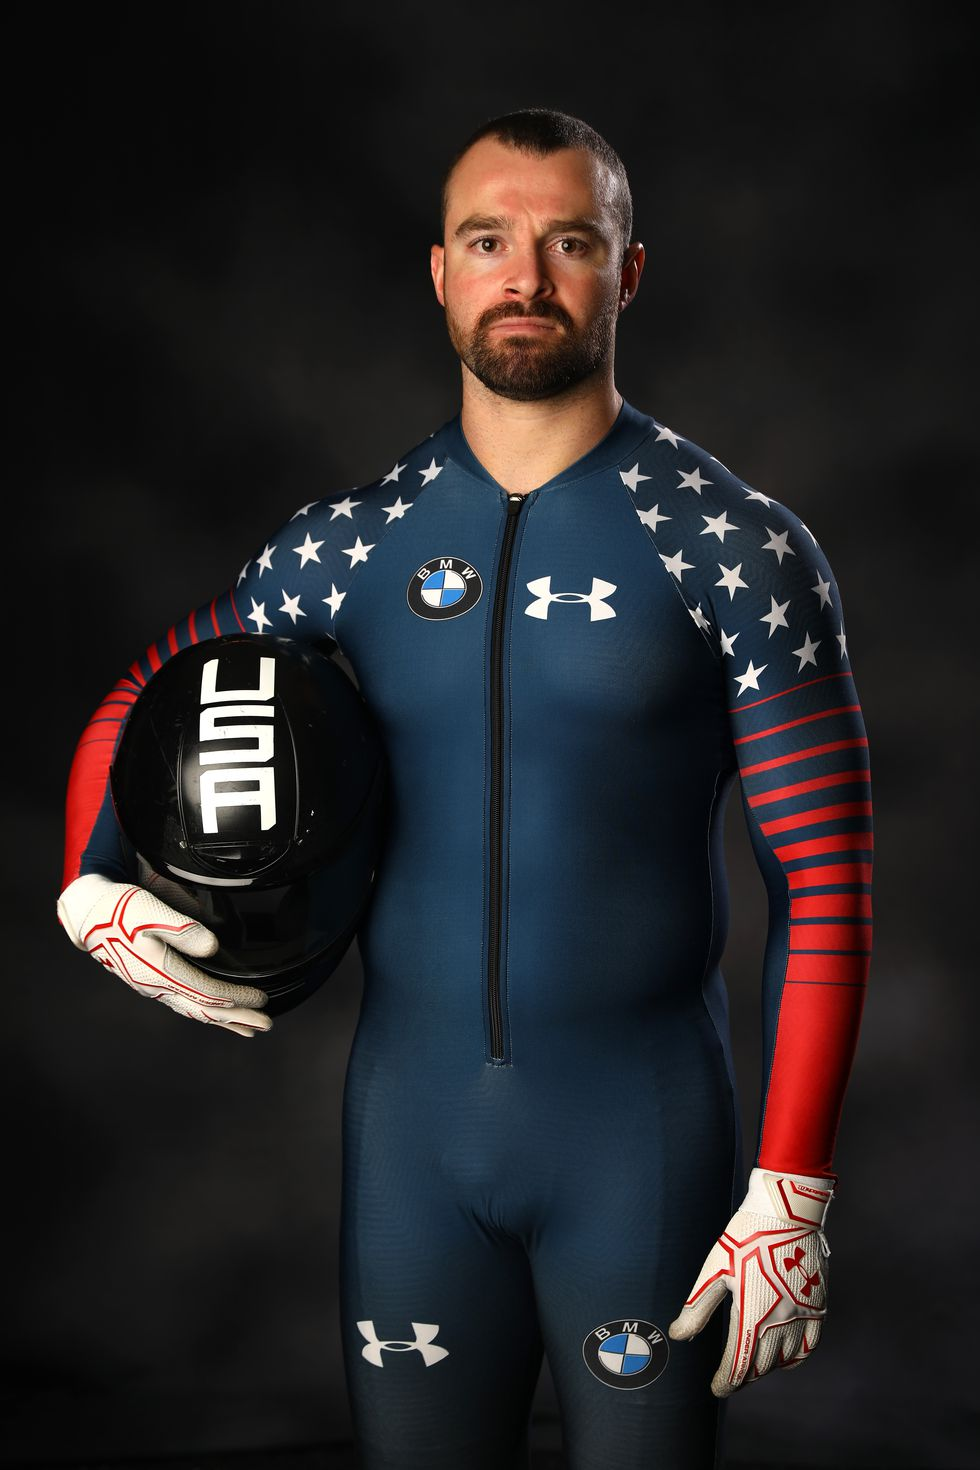 Carlo Valdes, USA The bobsledder's official Team USA portrait.